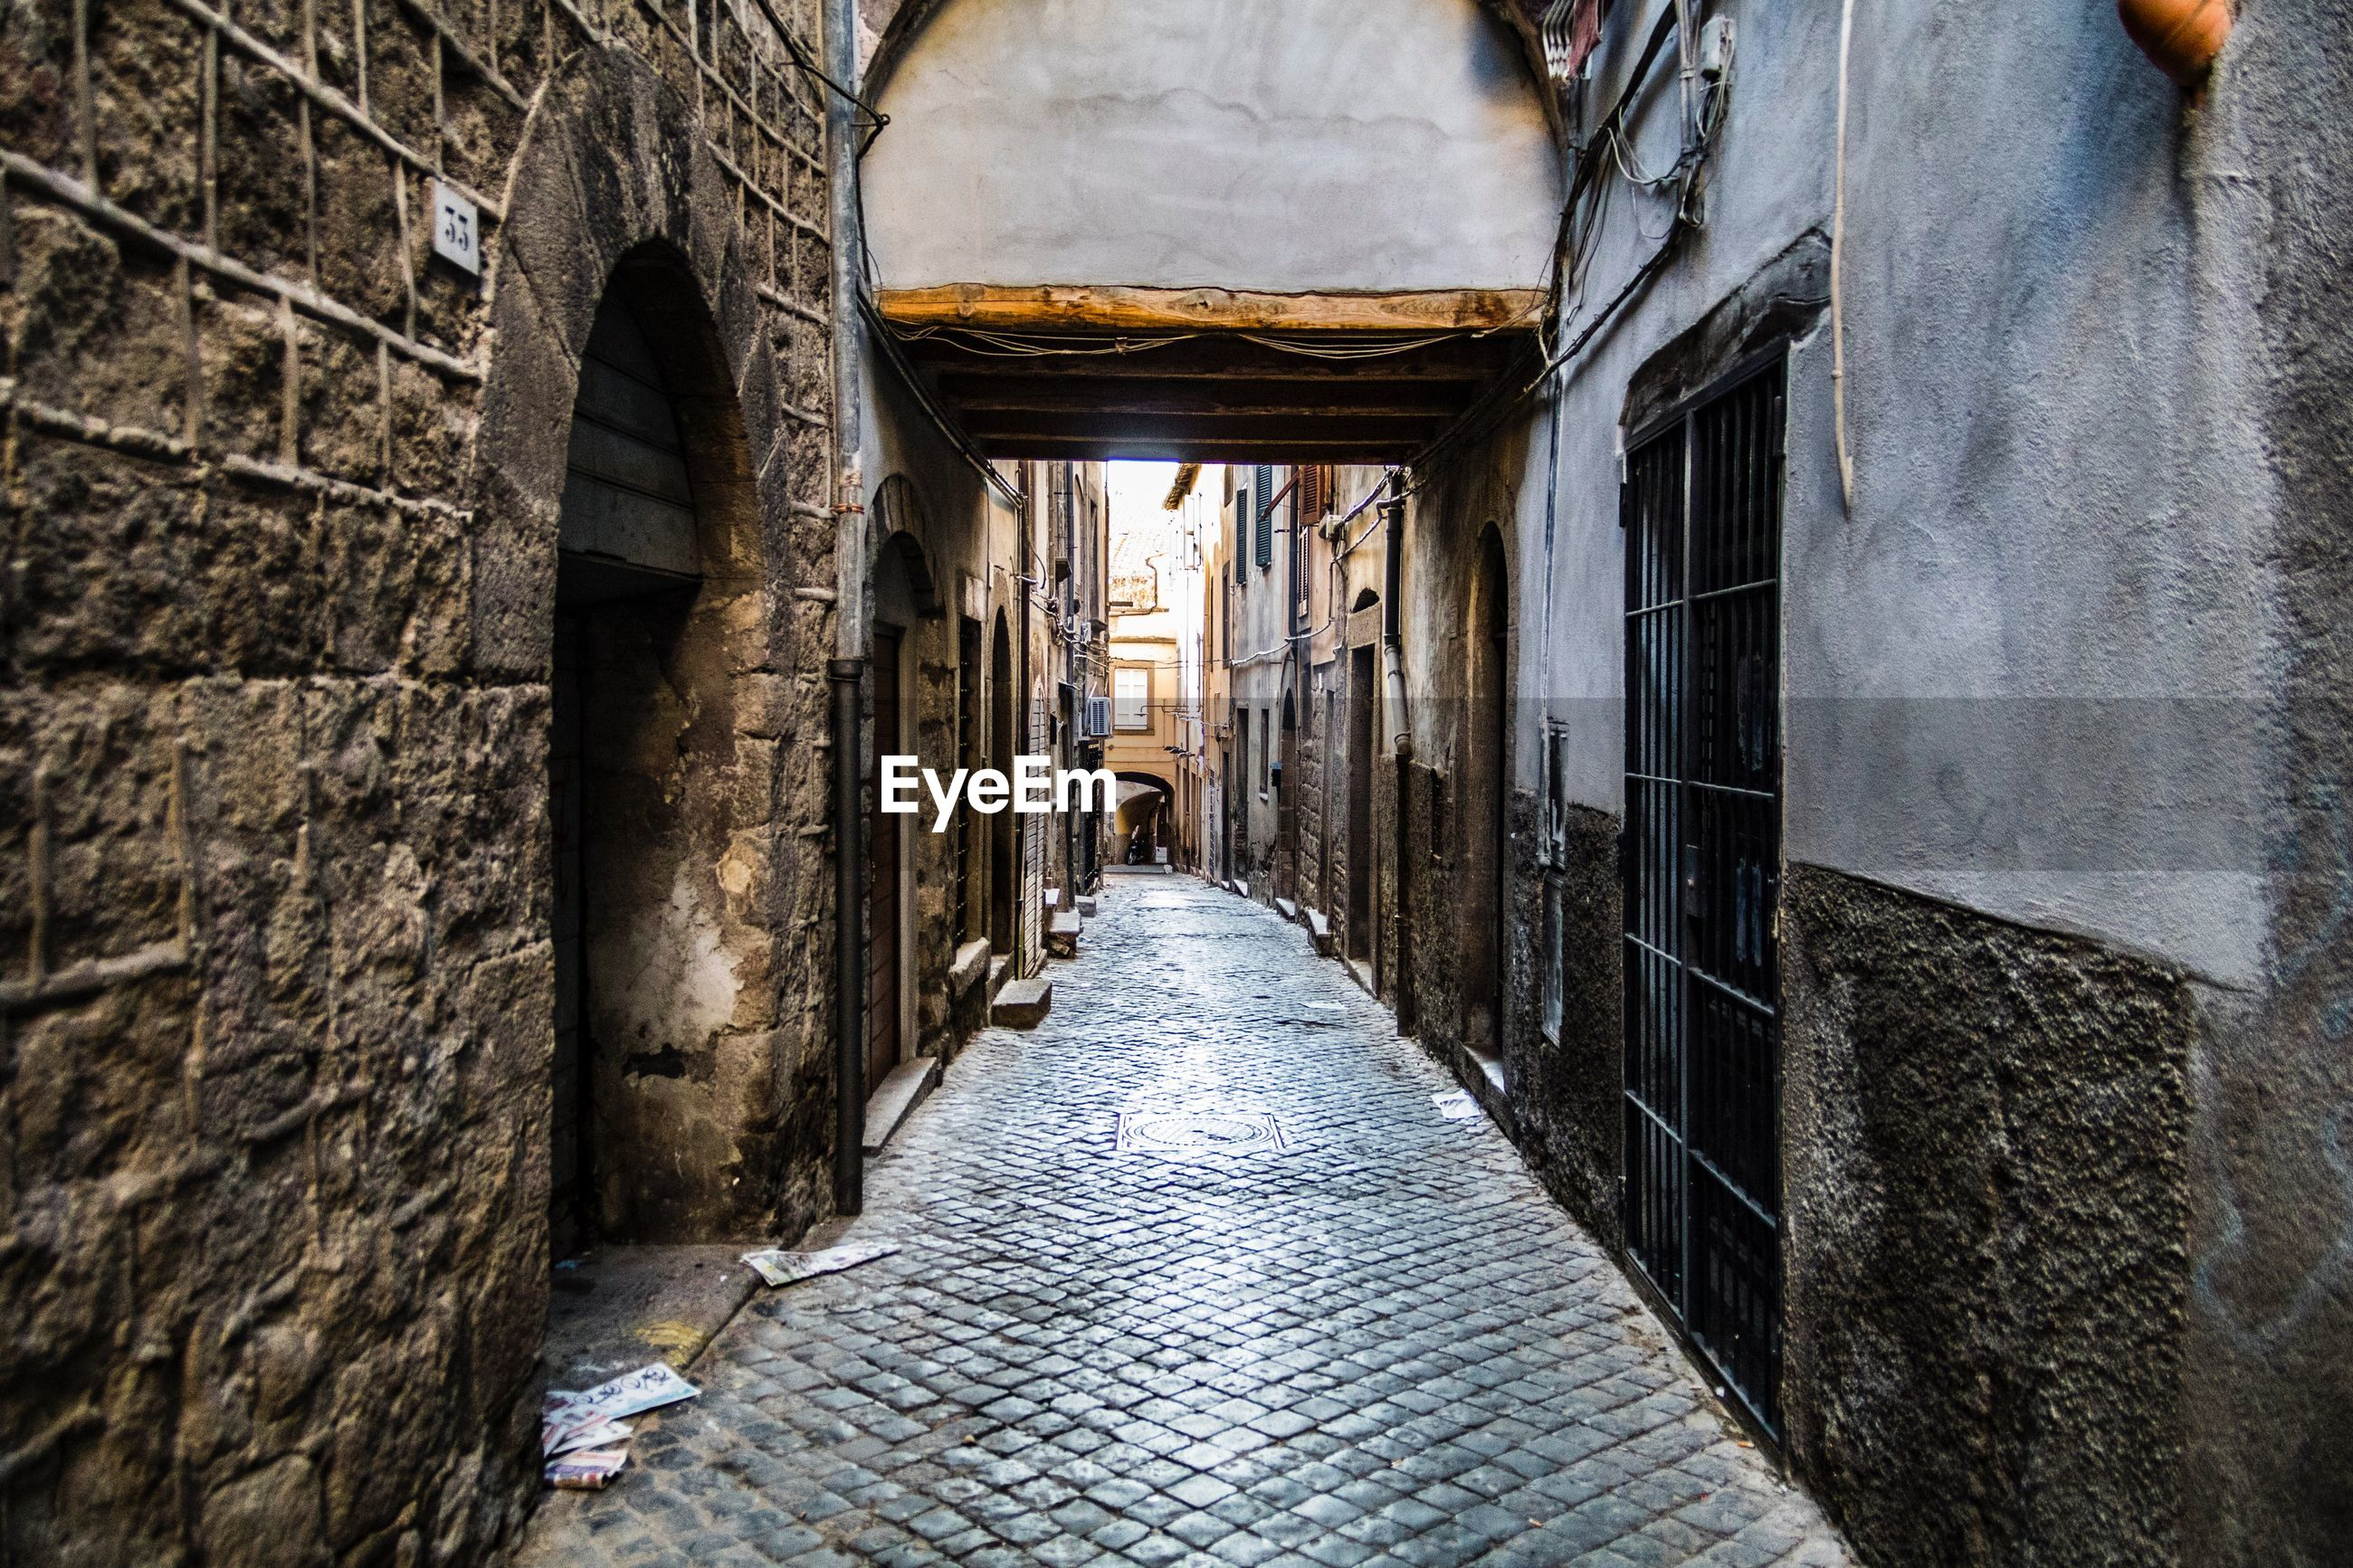 NARROW STREET AMIDST OLD BUILDING